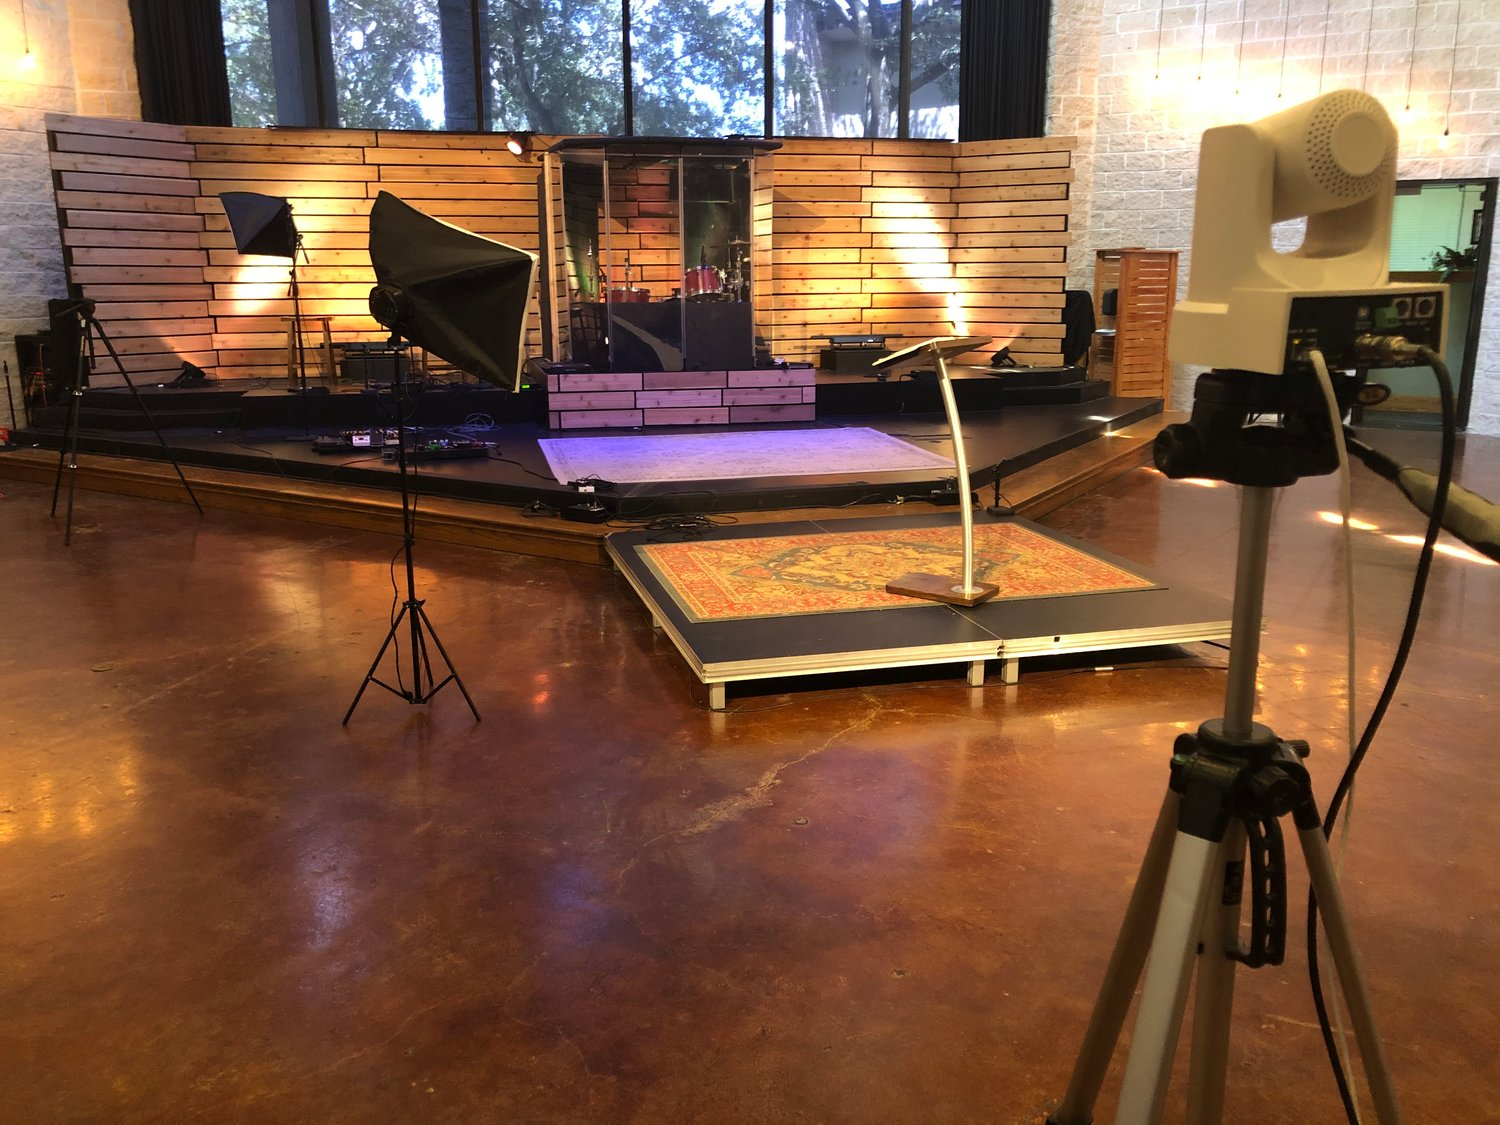 Lott Hall is prepared similar to a movie set to broadcast the Contemporary worship service for St. Peter's United Methodist Church in Katy.